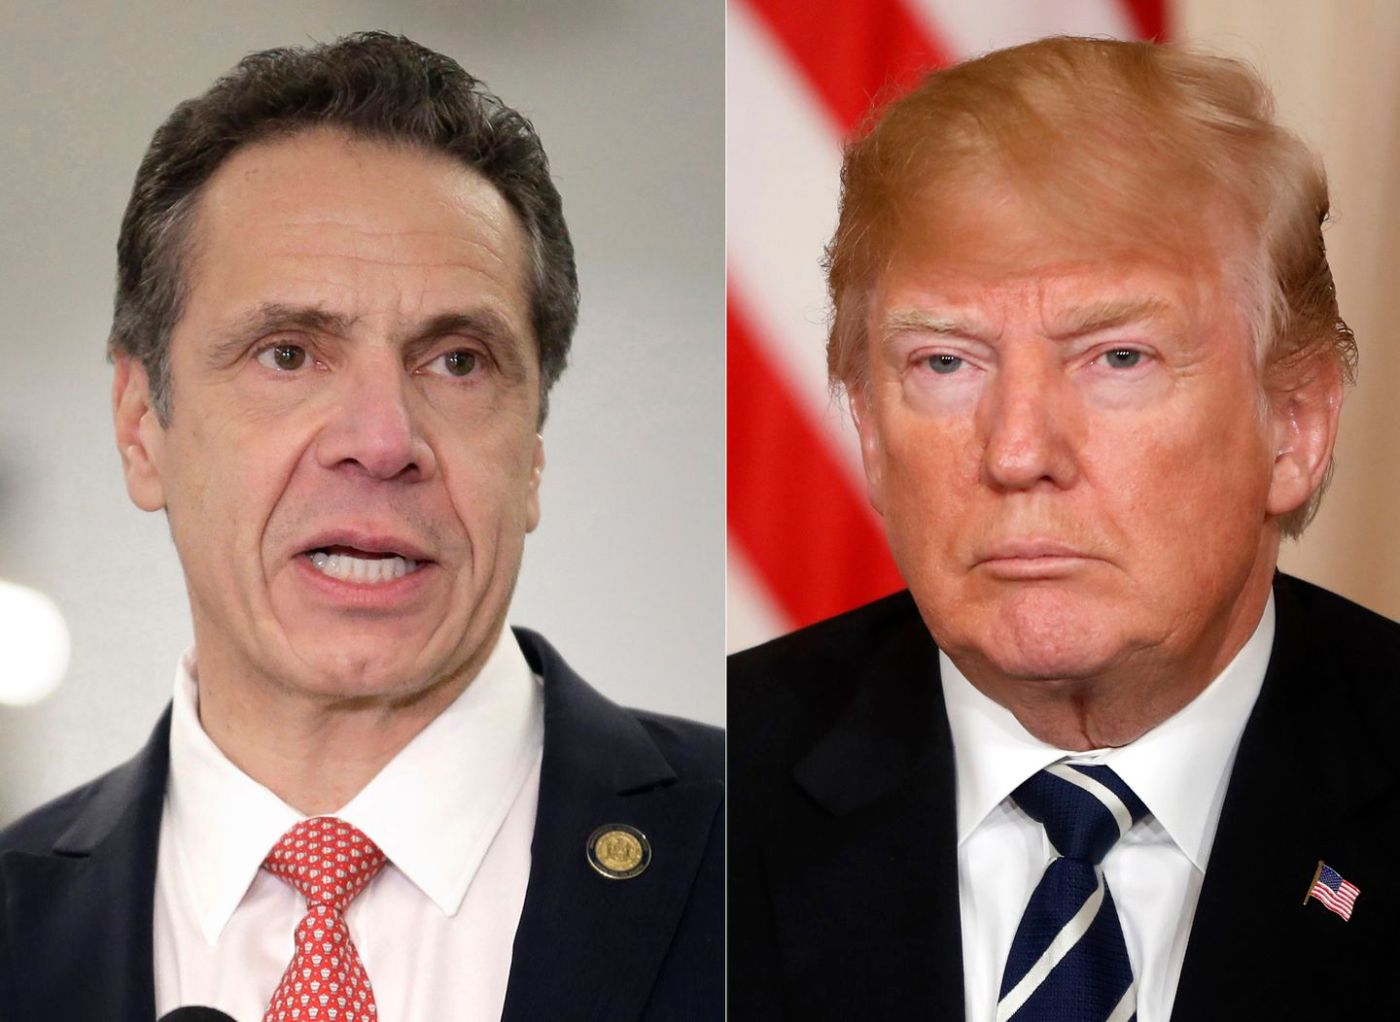 Trump finds someone to blame for coronavirus: Andrew Cuomo - The ...